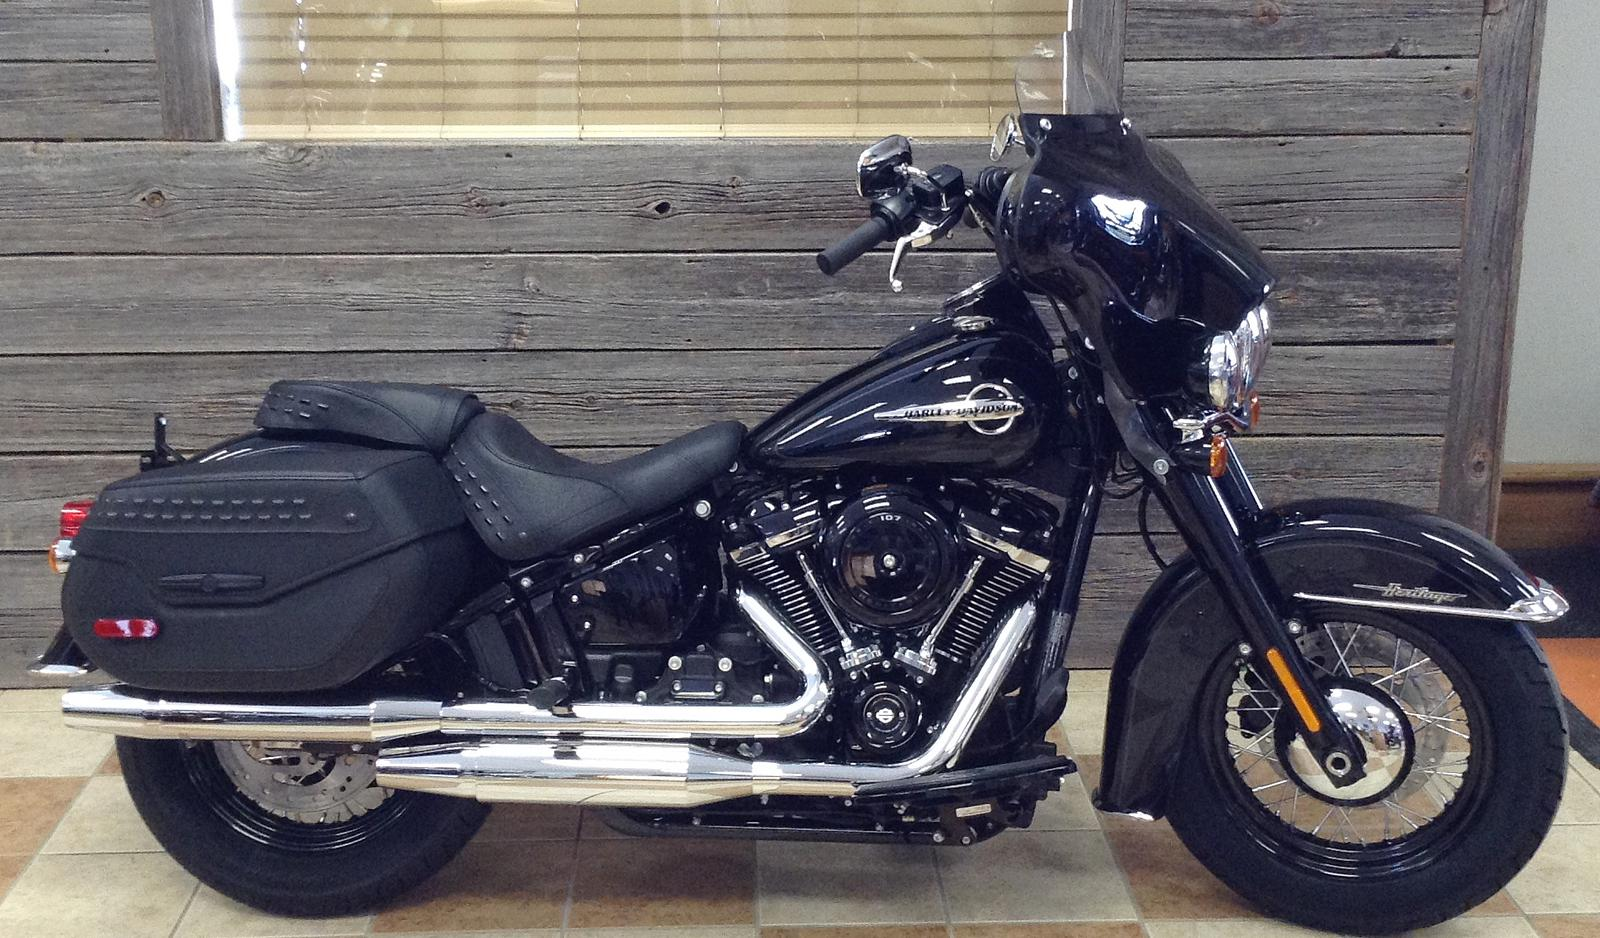 2019 Harley-Davidson® Heritage Classic 107 w/Fairing for sale in